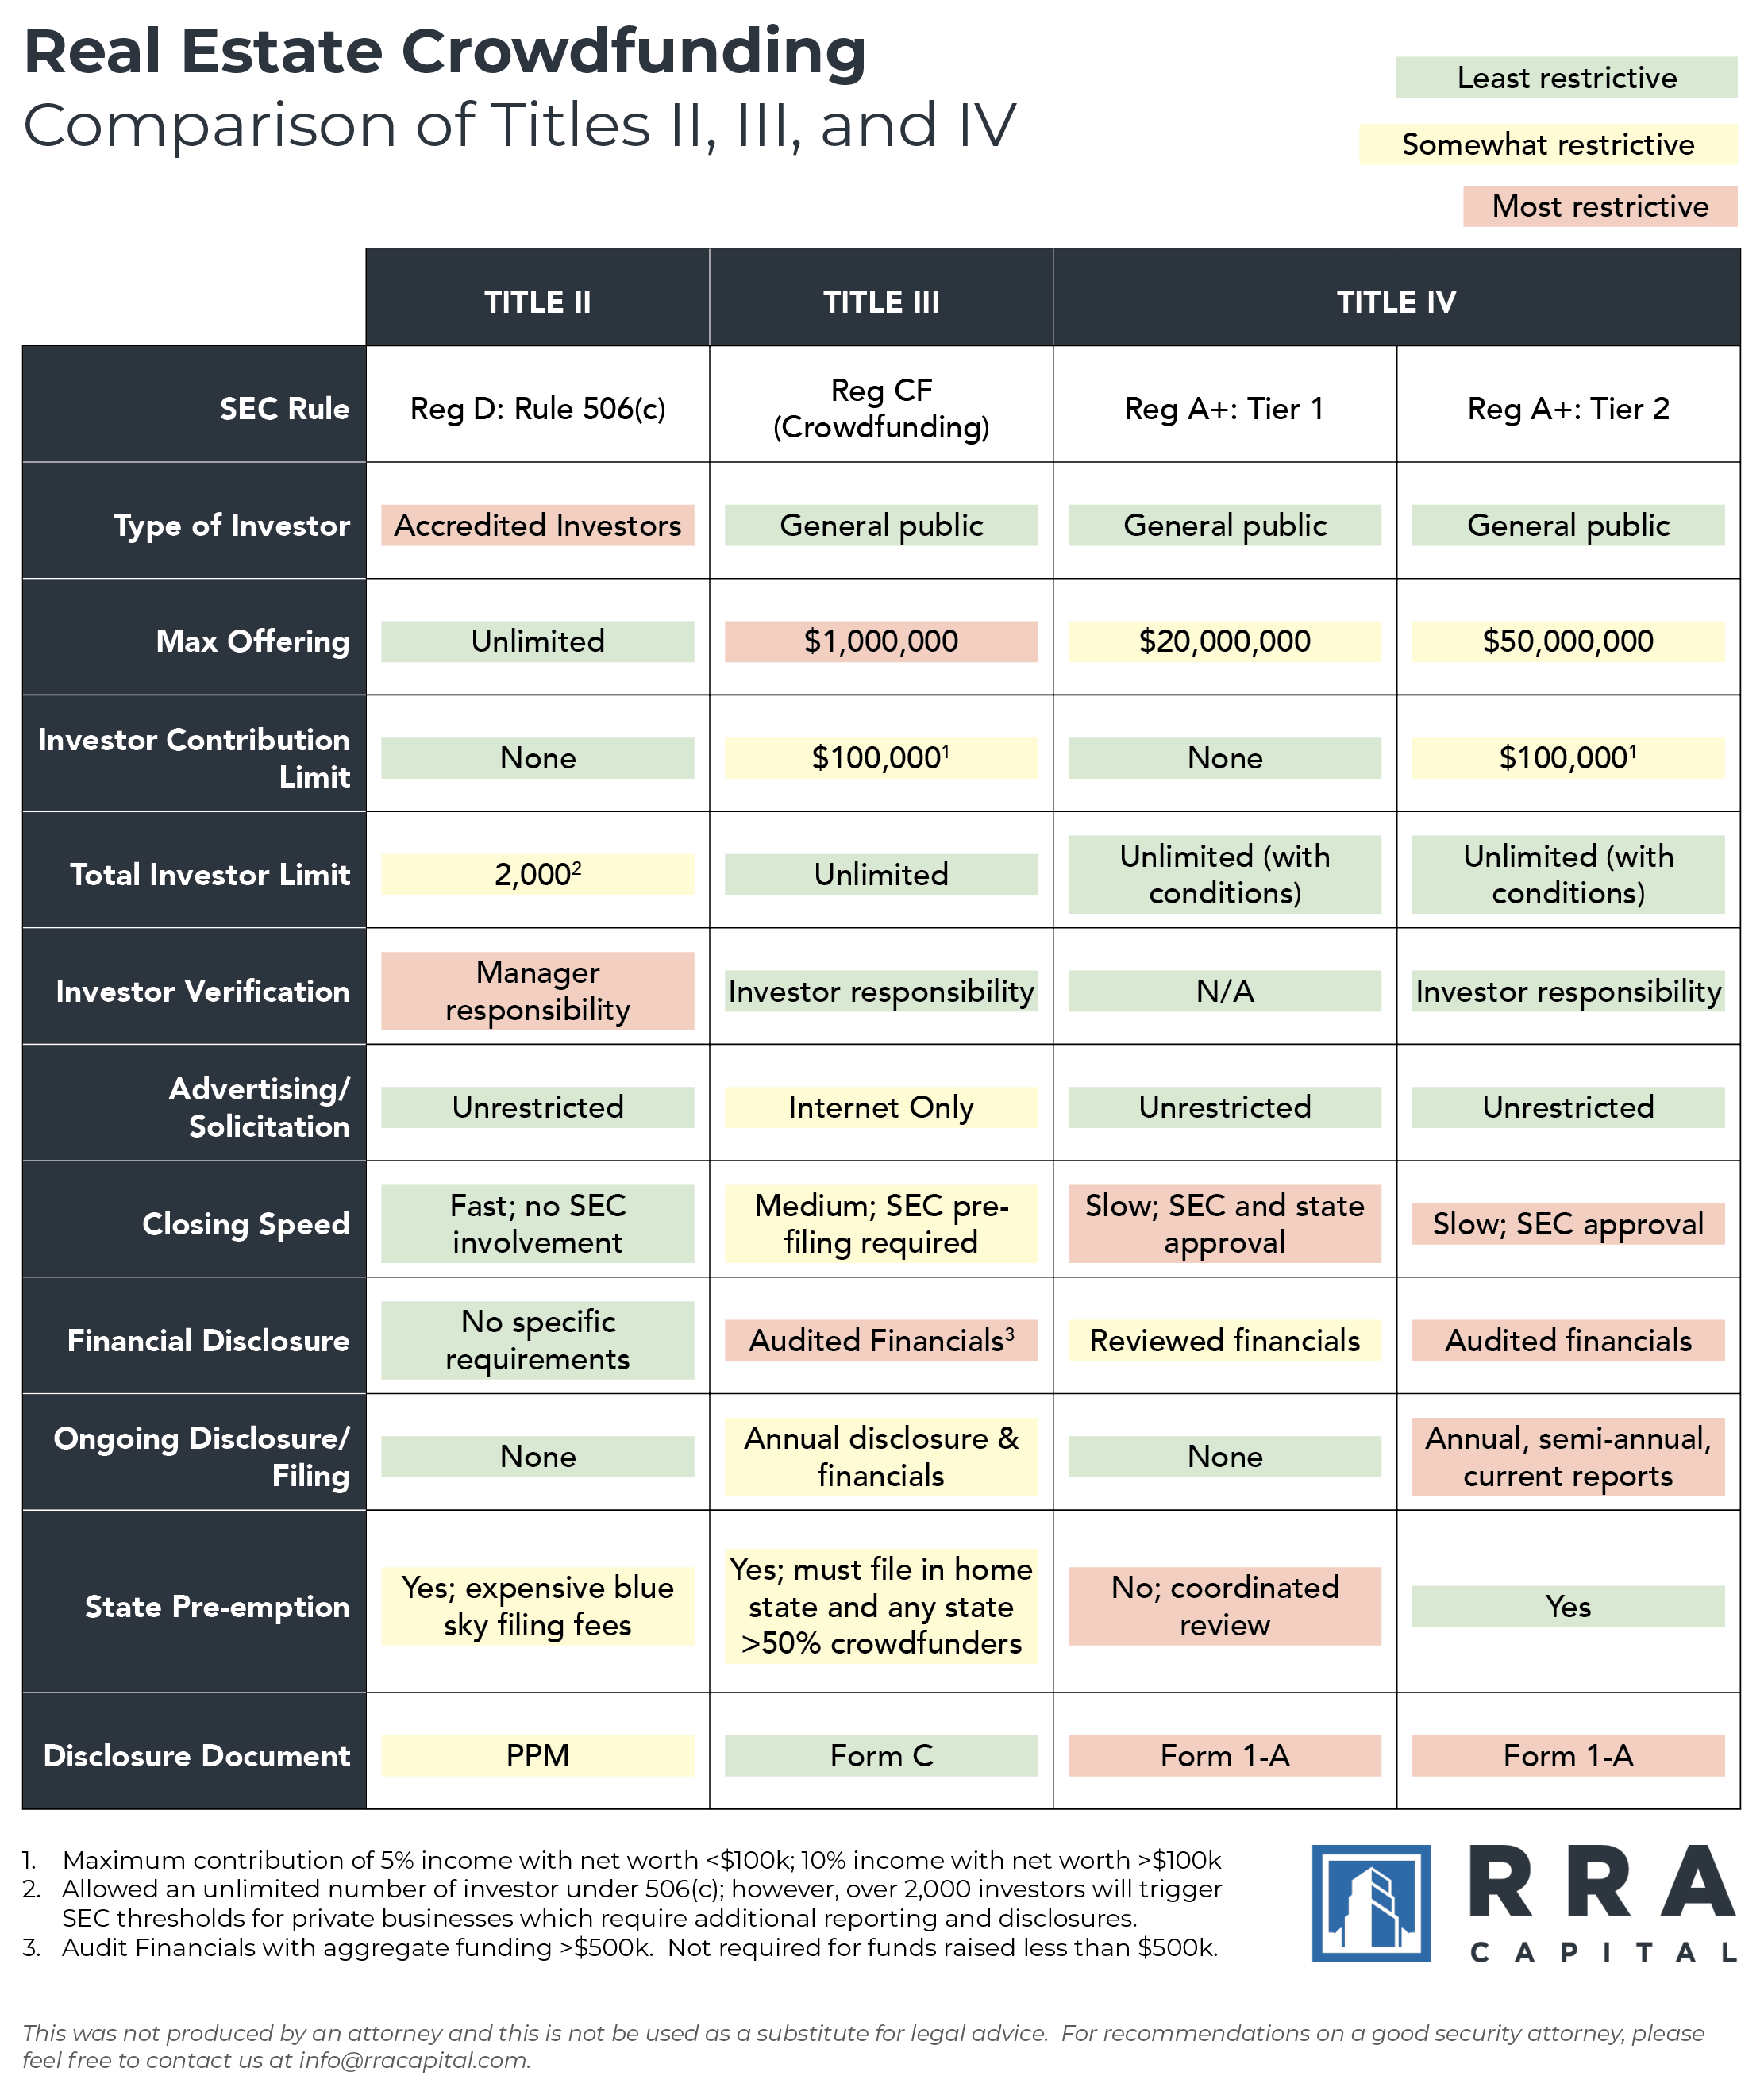 Real Estate Crowdfunding Comparison - Titles II, III, and IV by RRA Capital